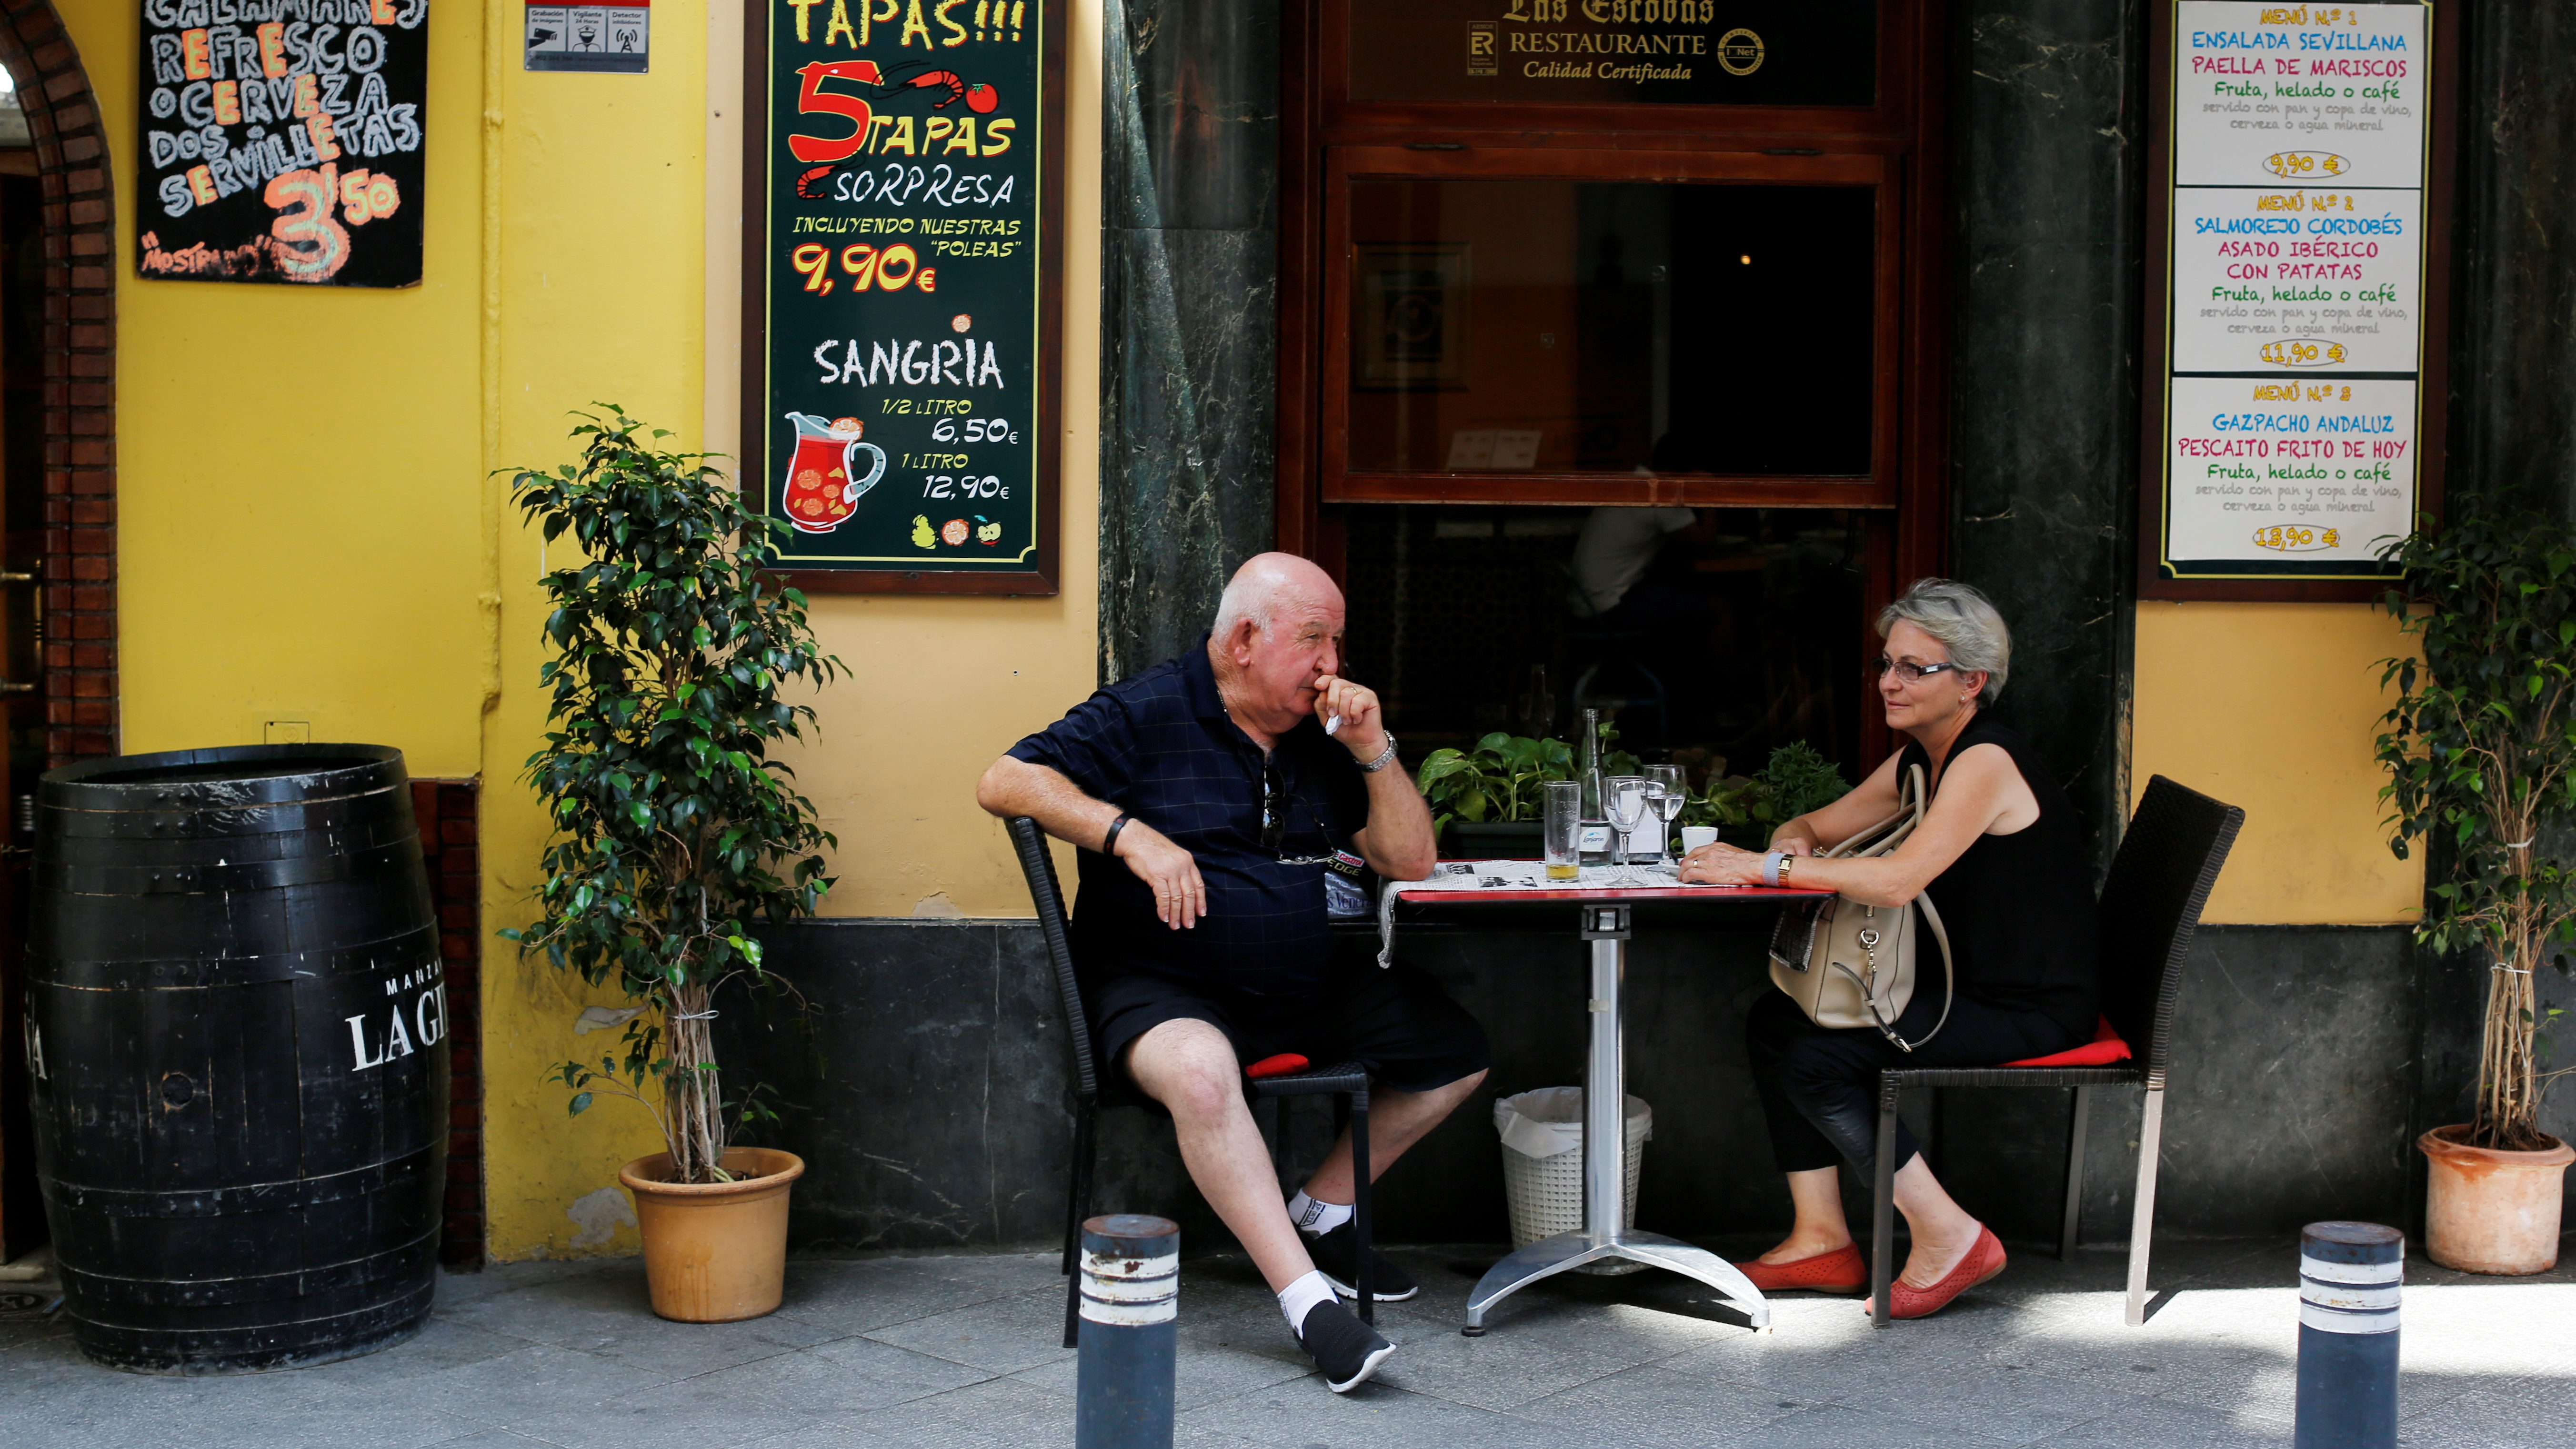 A couple sit at a restaurant in a touristic area of the Andalusian capital of Seville